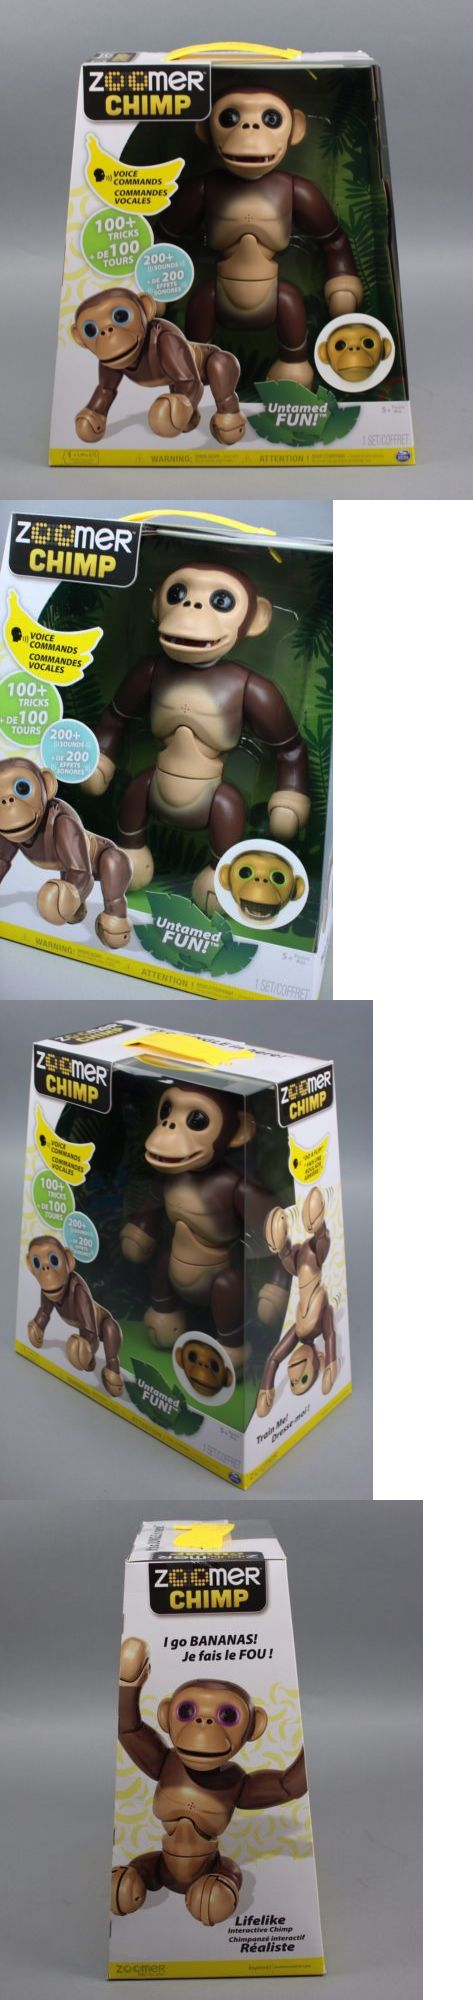 Other Interactive Toys 232: Monkey Chimp Zoomer Interactive Robot Voice Command Movement Sensor -> BUY IT NOW ONLY: $79.98 on eBay!